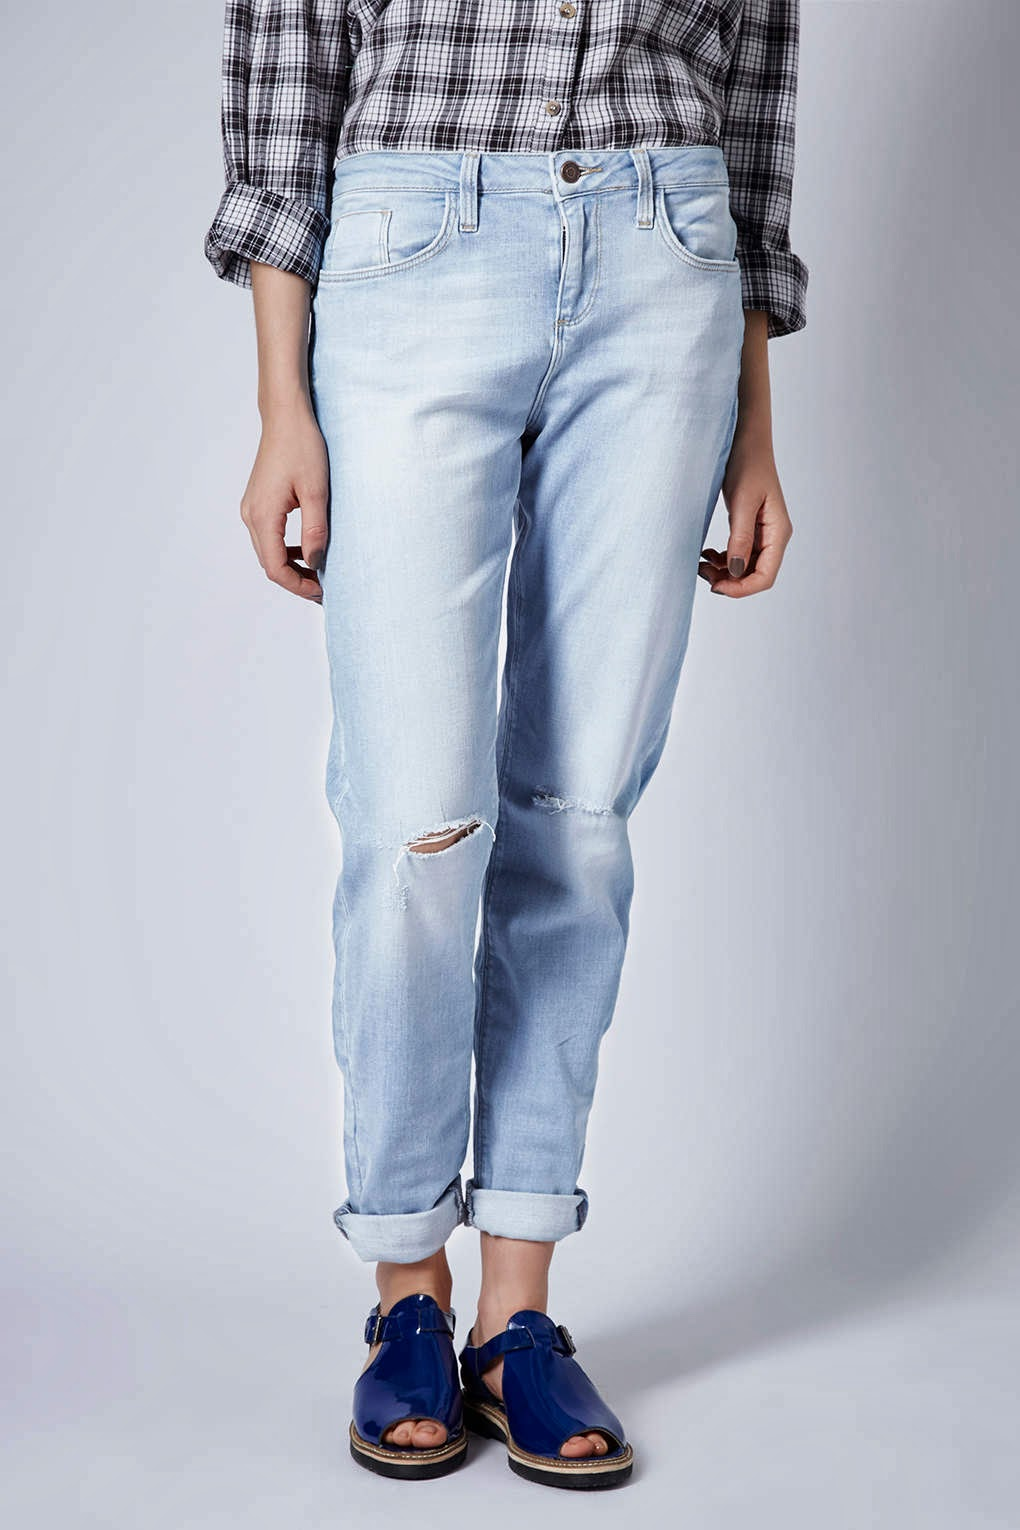 topshop bleached jeans